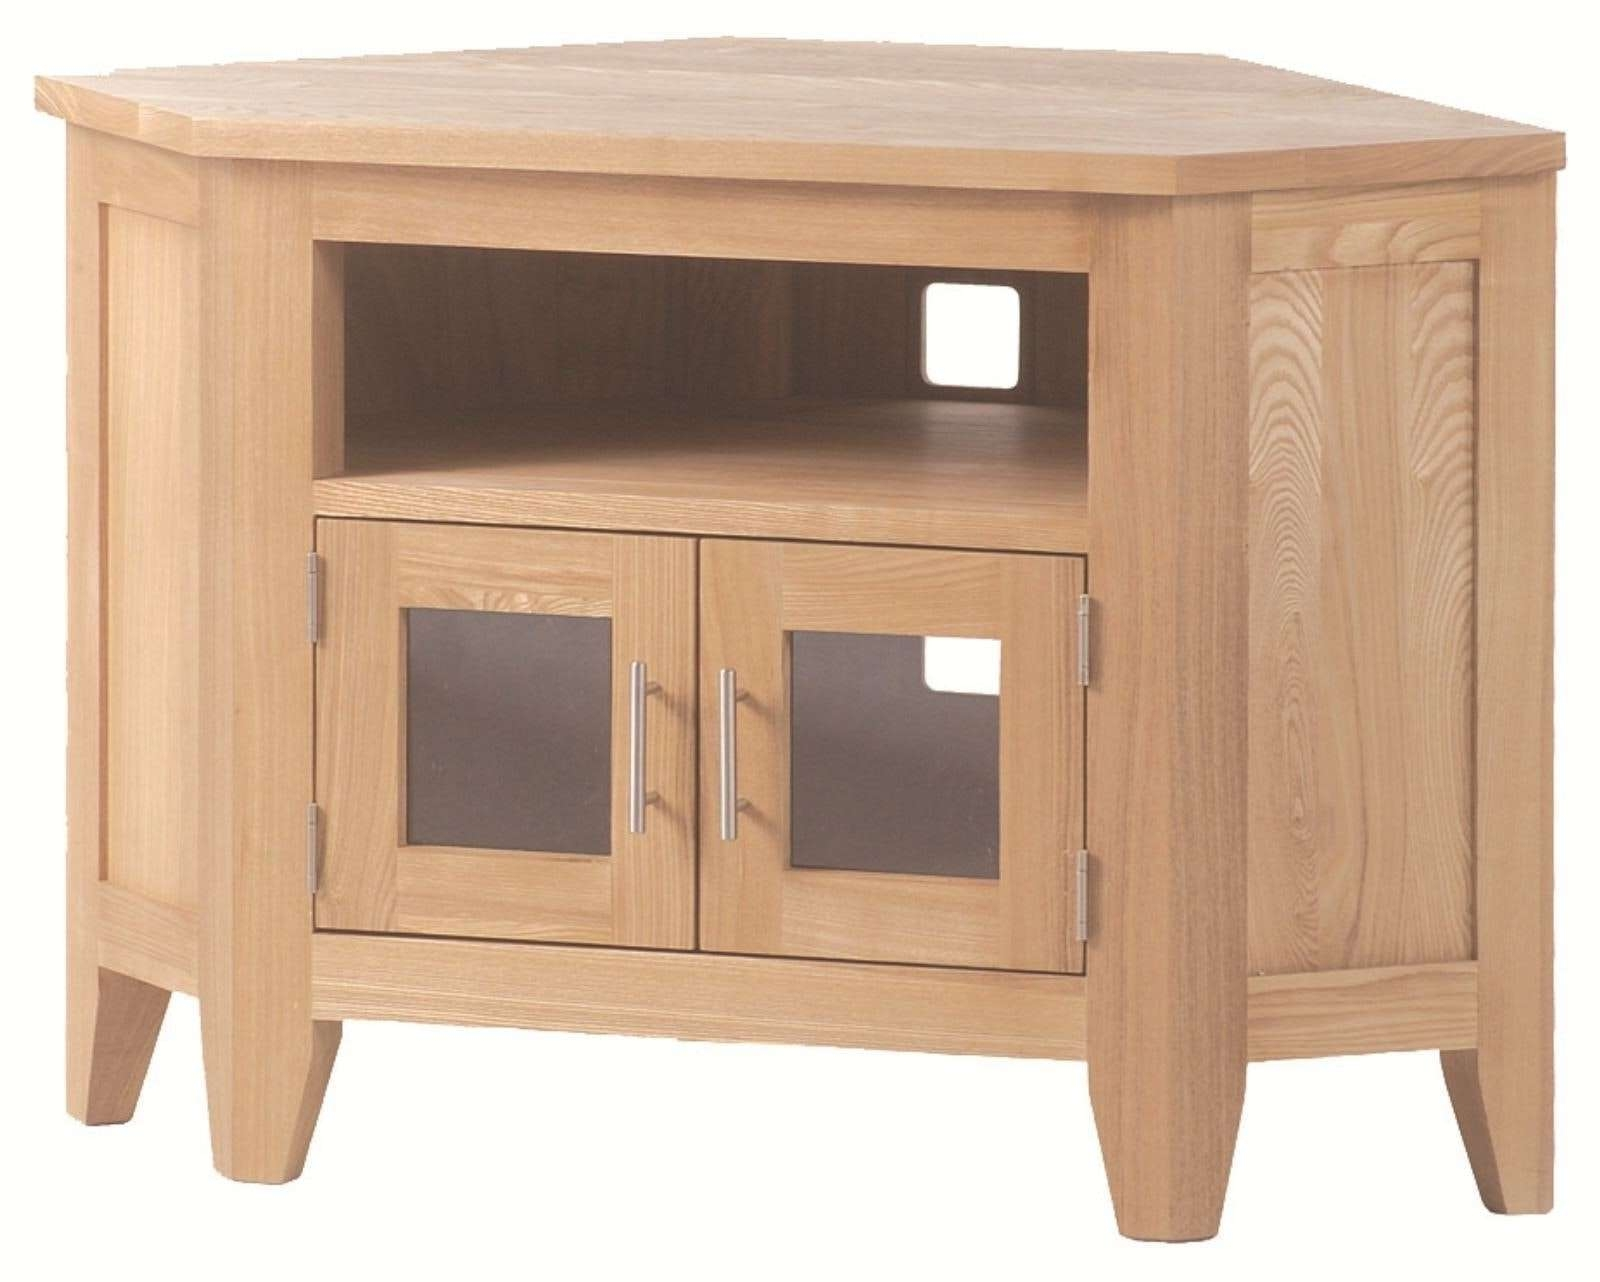 Kitchen : Picture Of White Wood Corner Tv Stand With Double Doors Intended For Small Corner Tv Cabinets (View 17 of 20)